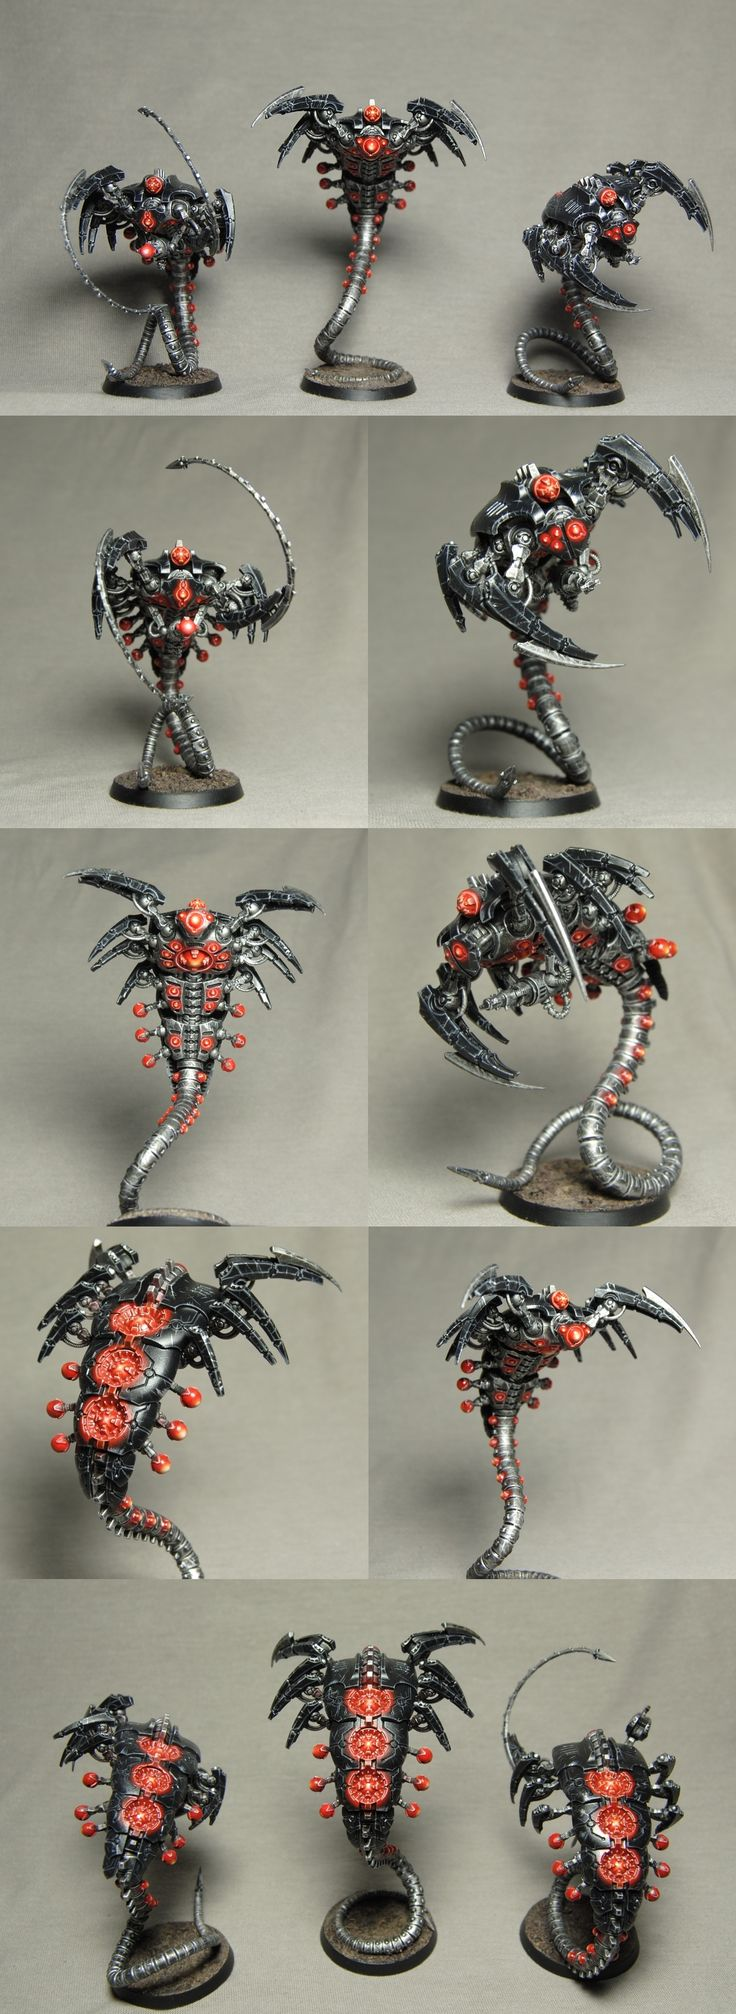 Necron Canoptek Wraiths {but dif simple color scheme.. some kind of beat up metal, airbrush sickly yellow.. bam!}